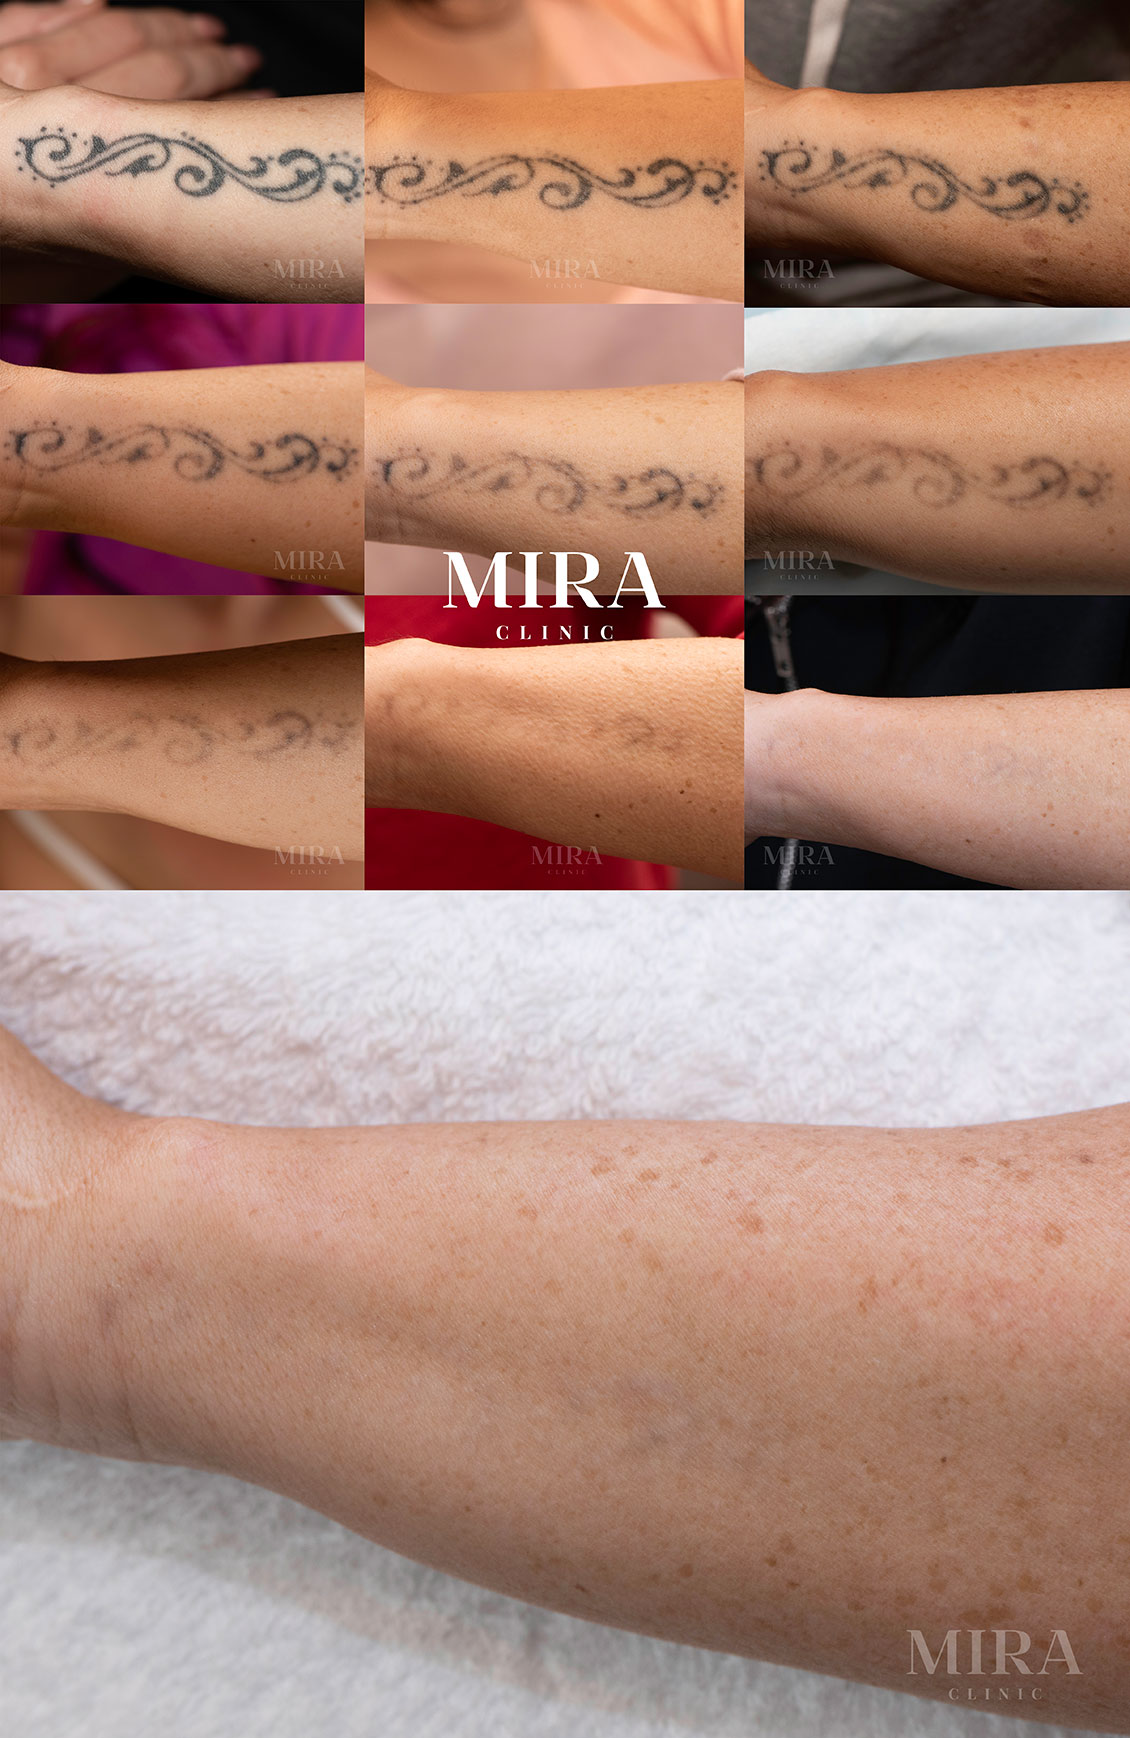 MIRA Clinic complete tattoo removal before and after nine separate treatments